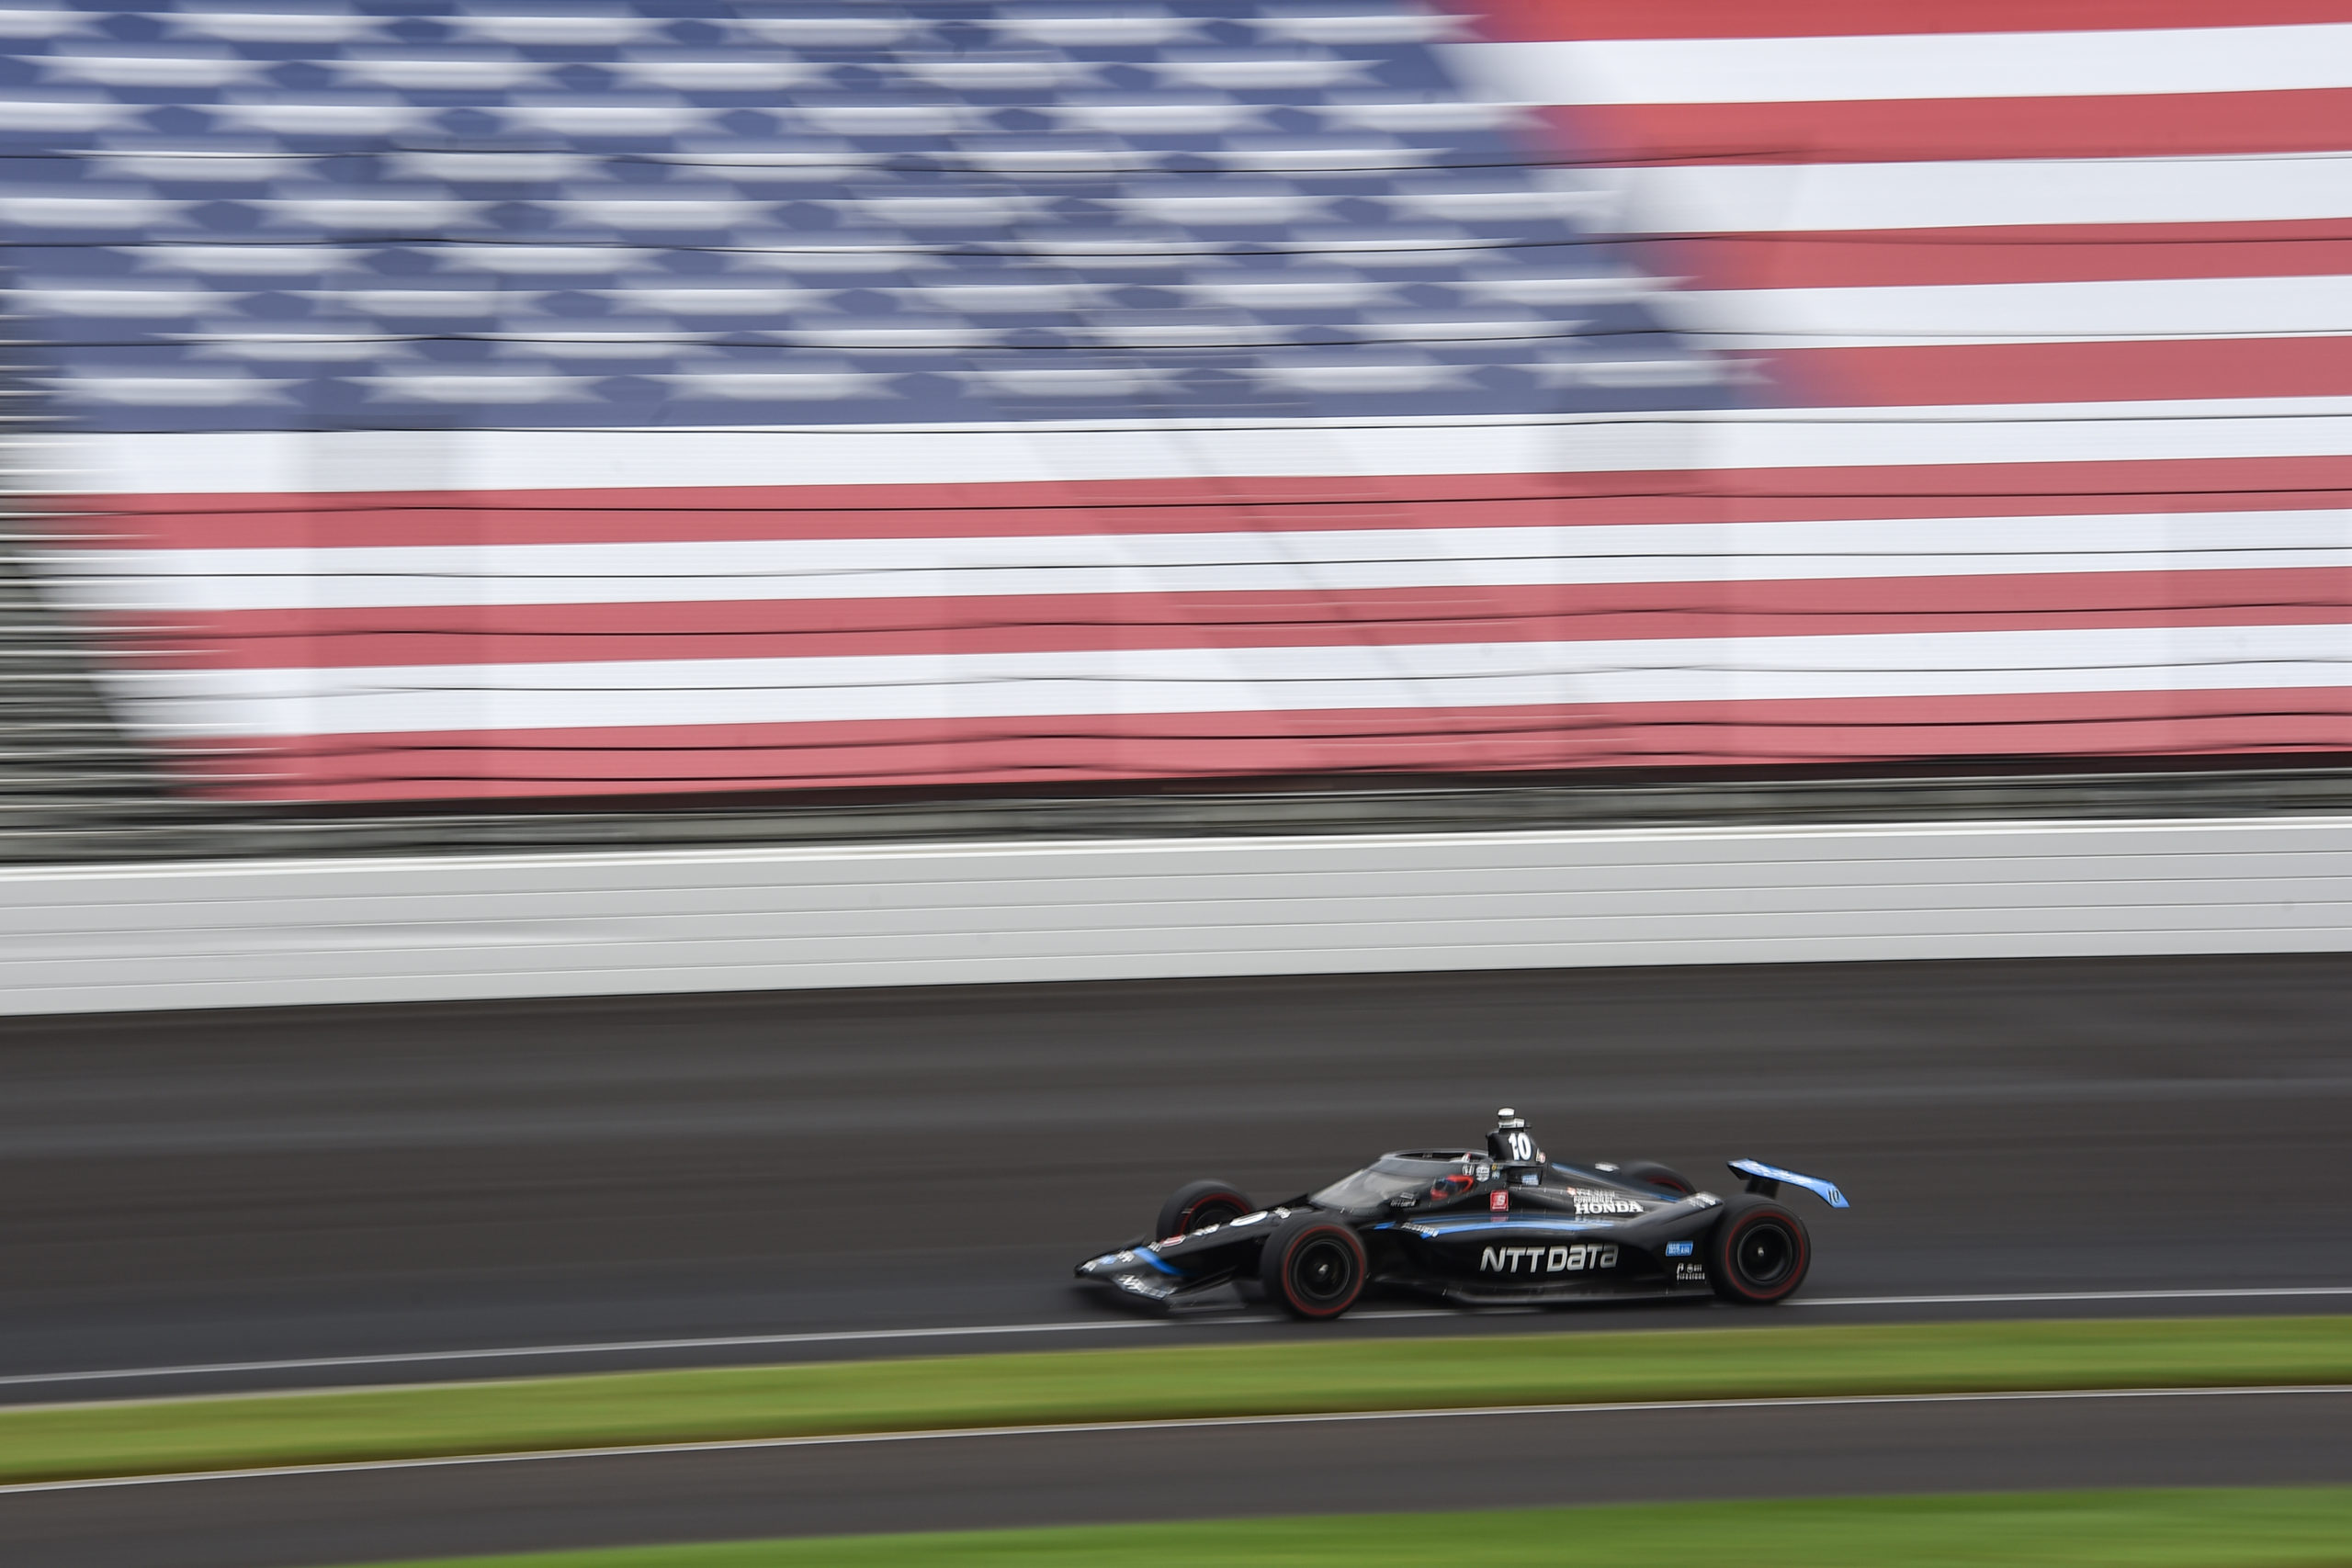 JDC_INDY5-2020_0351-A